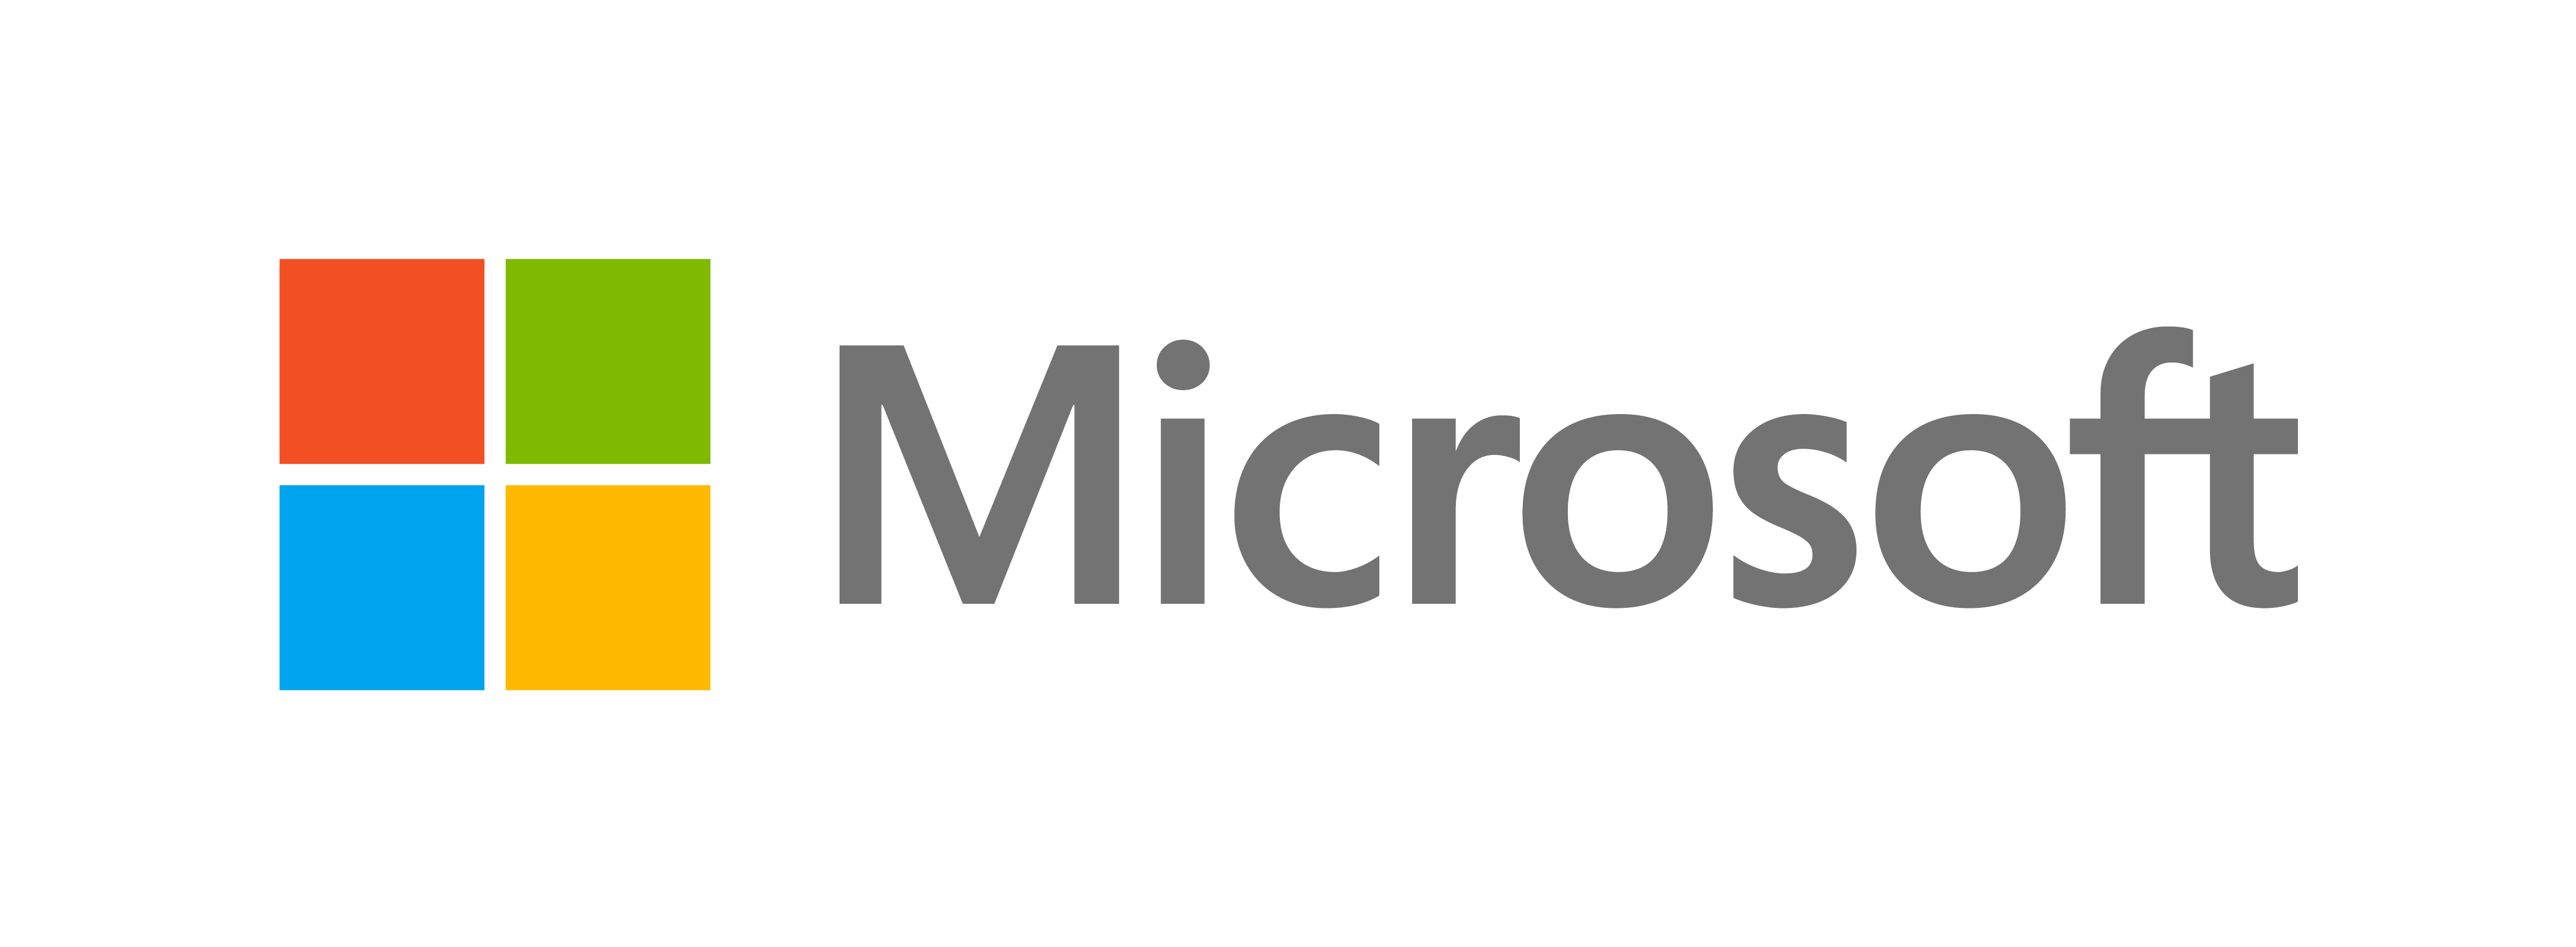 Image result for images for microsoft logo